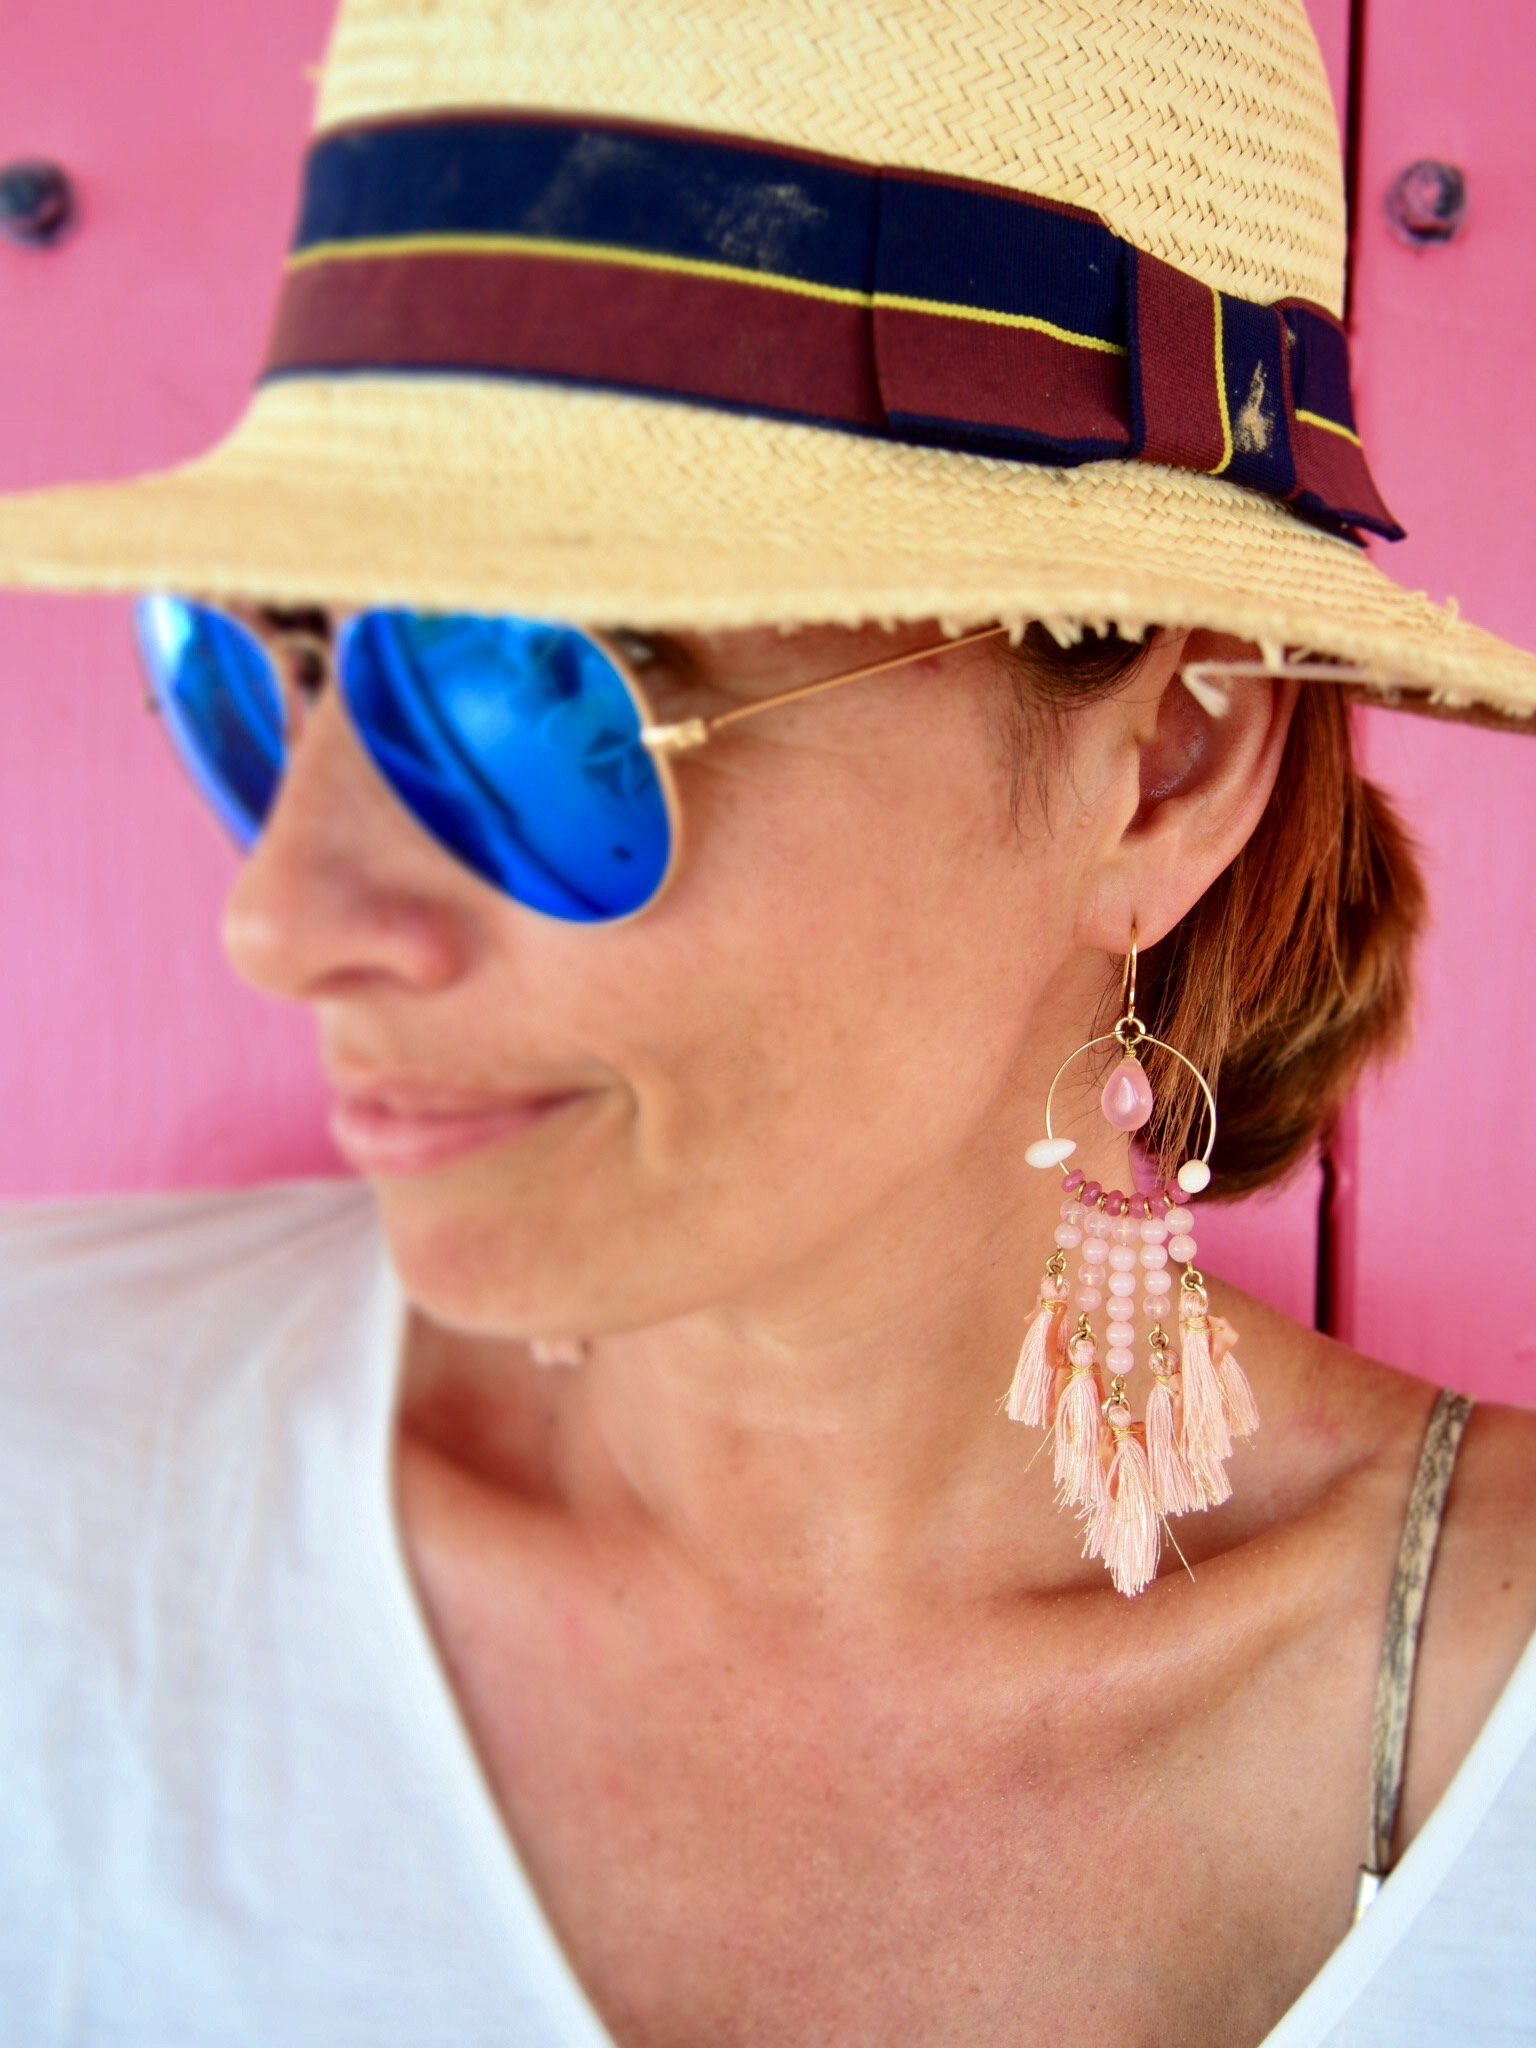 Claire Elizabeth wearing large pink tassel earrings by Susan Suell and blue tinted ray an sunglasses